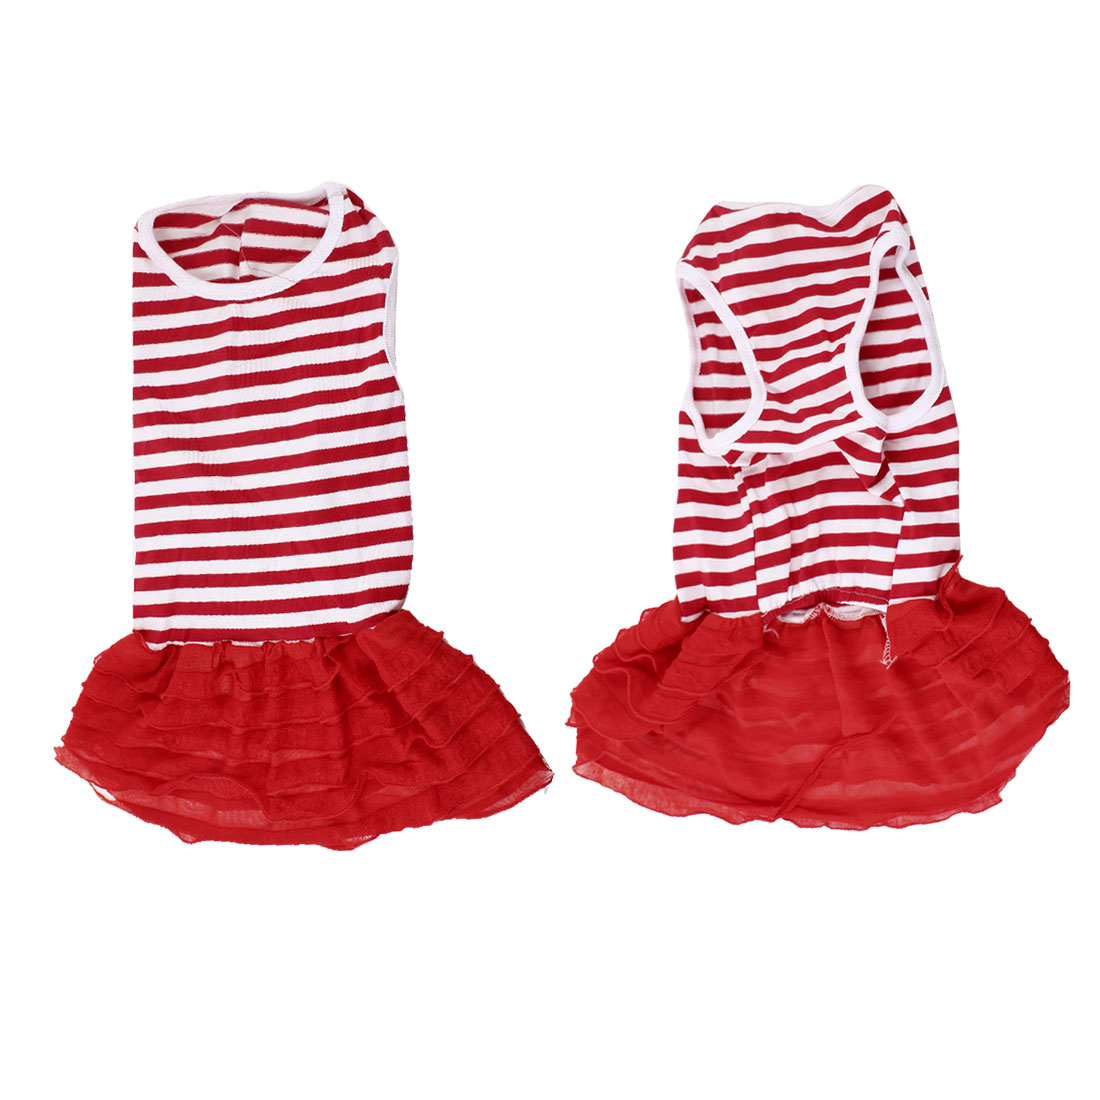 Unique Bargains Pet Dog Poodle Tiered Sleeveless Red White Stripe Pattern Dress Clothes M